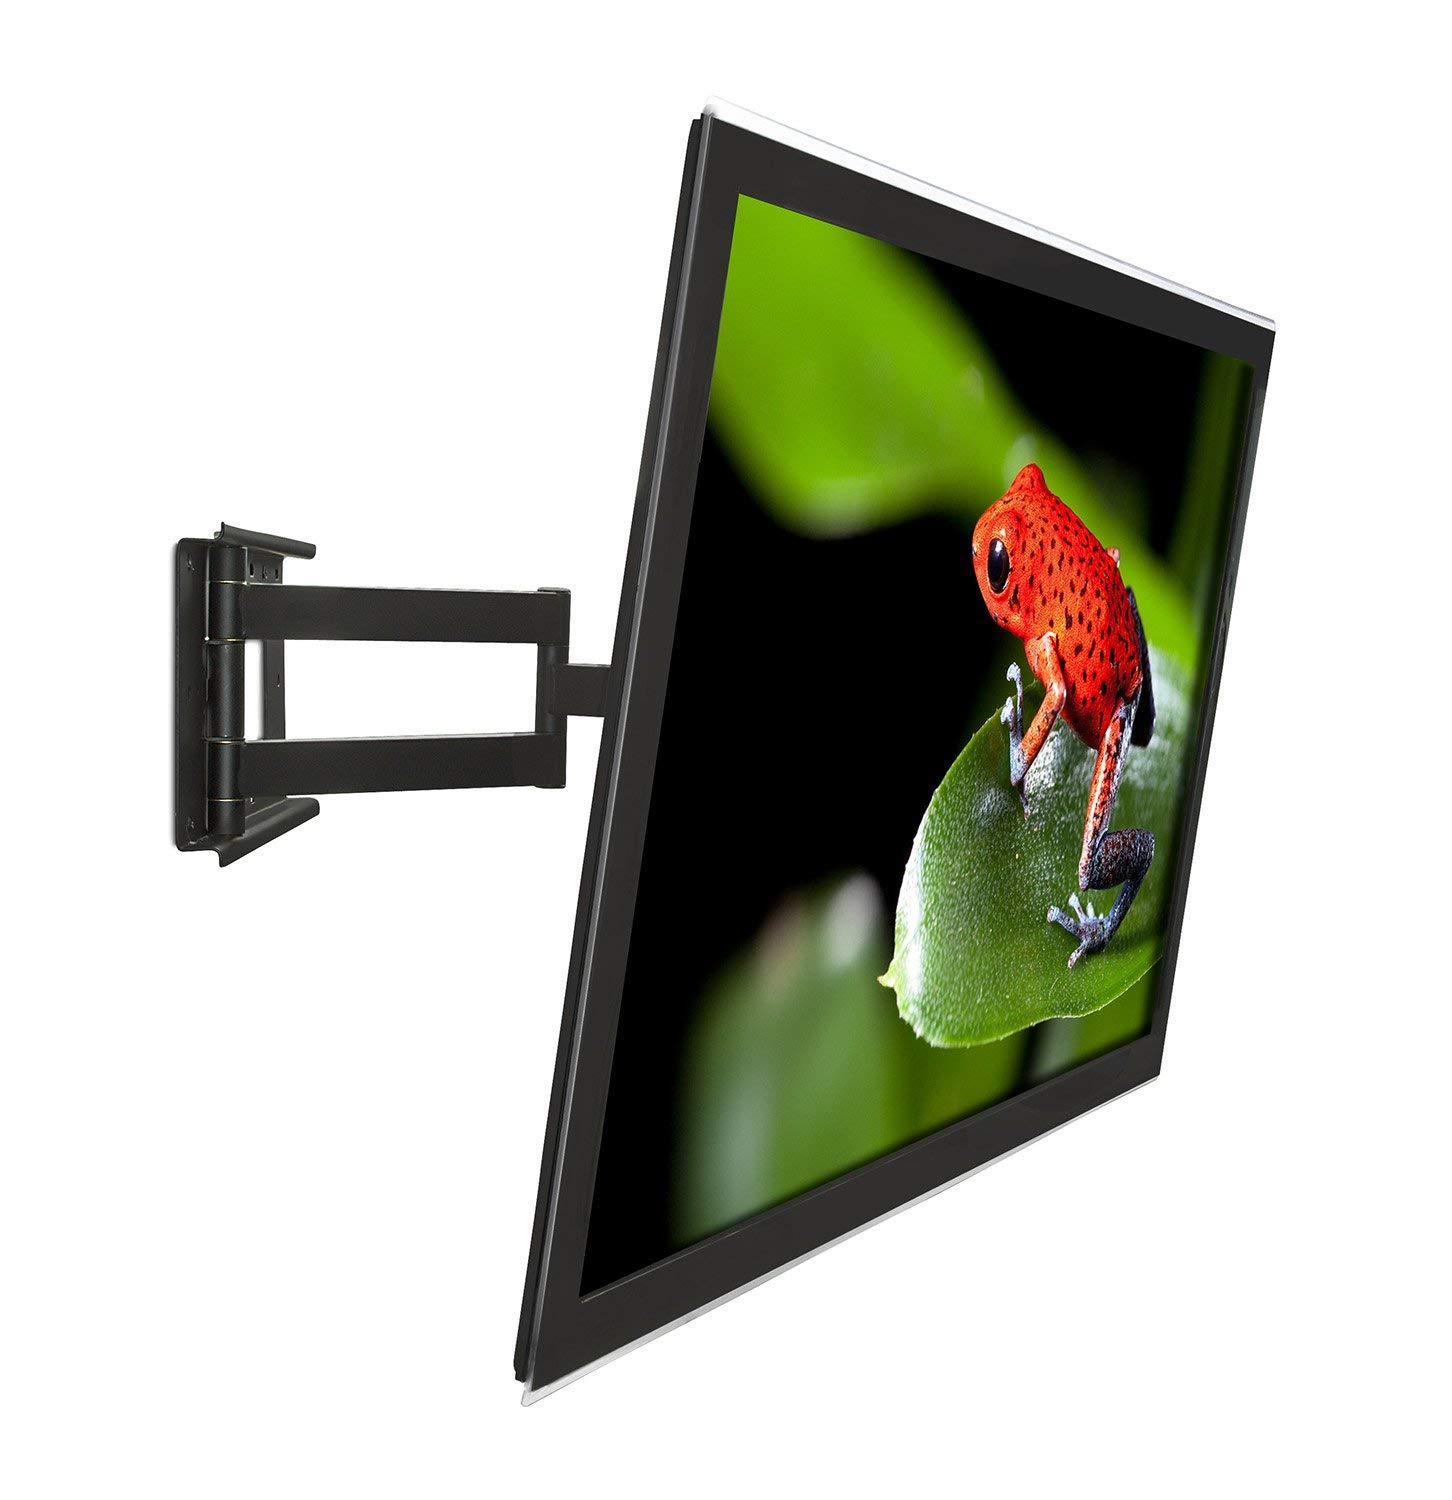 Mount-It! Long Arm TV Wall Mount With 26 Inch Extension, Swing Out Full Motion Design for Corner Installation, Fits 40 50, 55, 60, 65, 70 Inch Flat Screen TVs, 220 Pound Capacity by Everstone (Image #2)